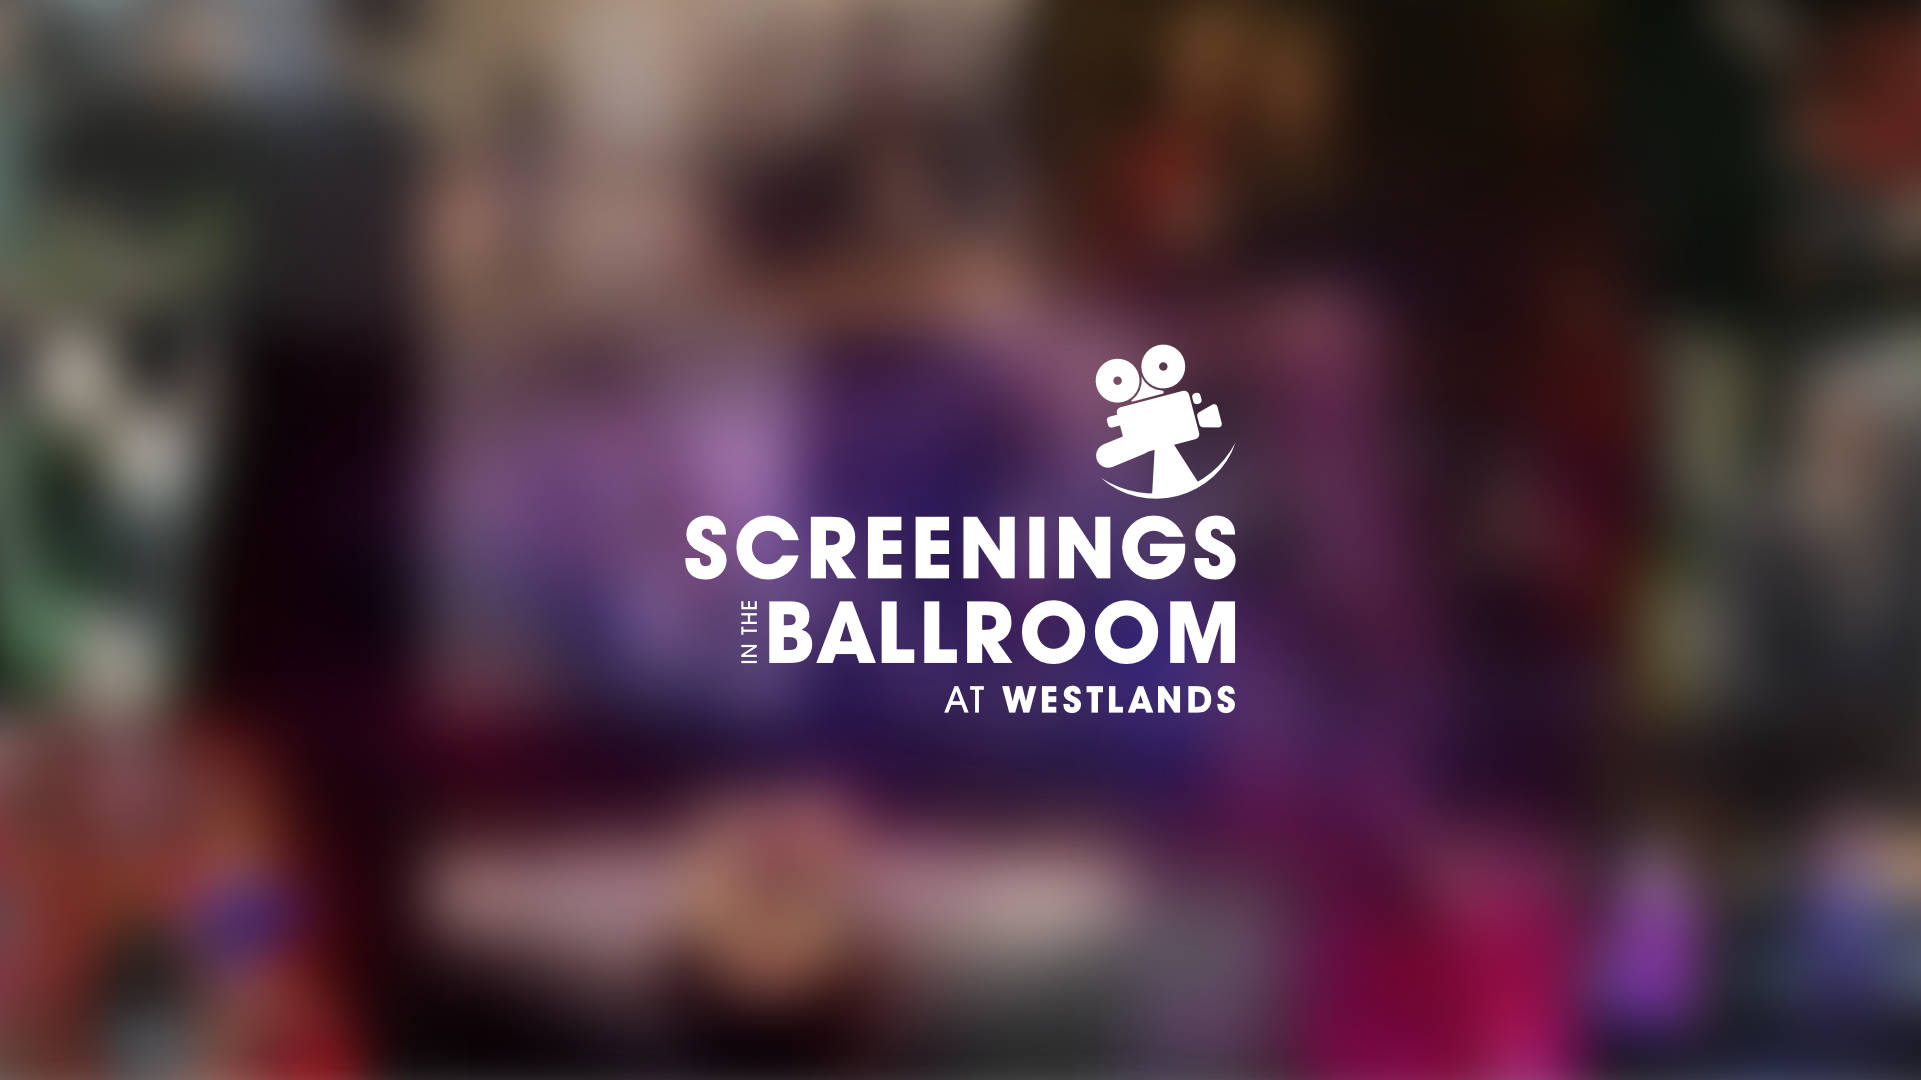 Screenings in the ballroom - title screen